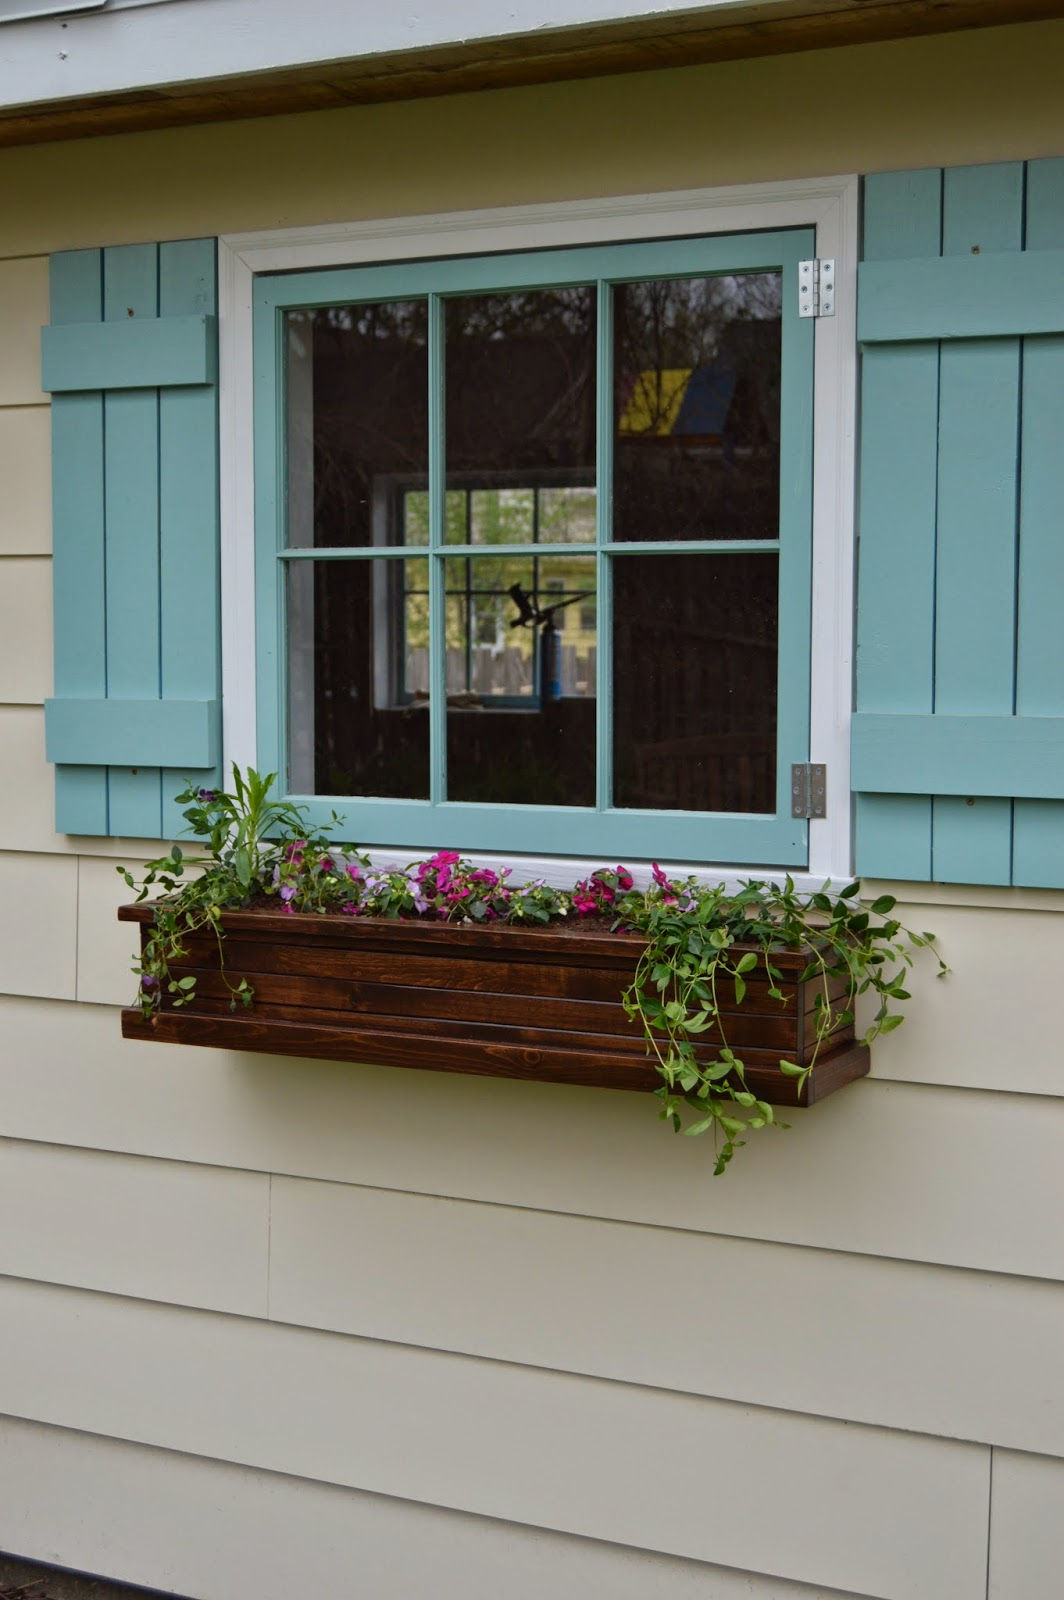 Get ready for spring with window boxes for Fenetre in english